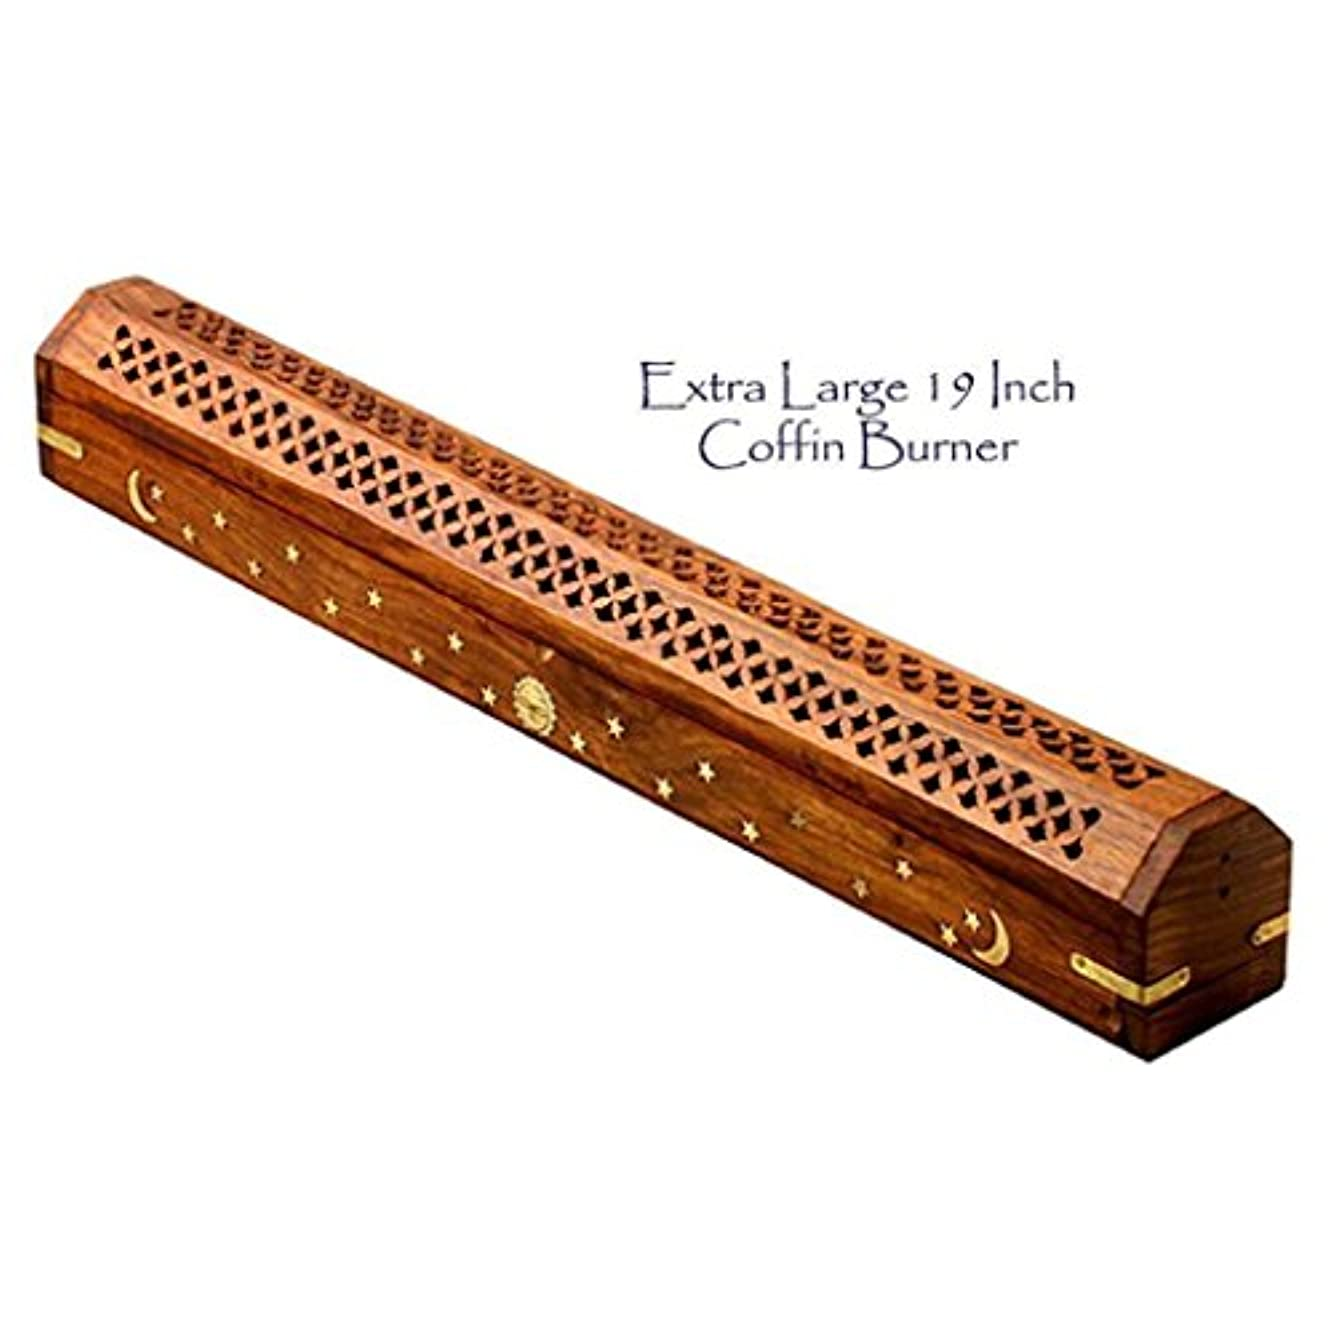 サスペンド腹セラーThe Parfumerie Incense CoFfIn / Burner Extra Large for 19 in。Incense Sticks – 真鍮月&星